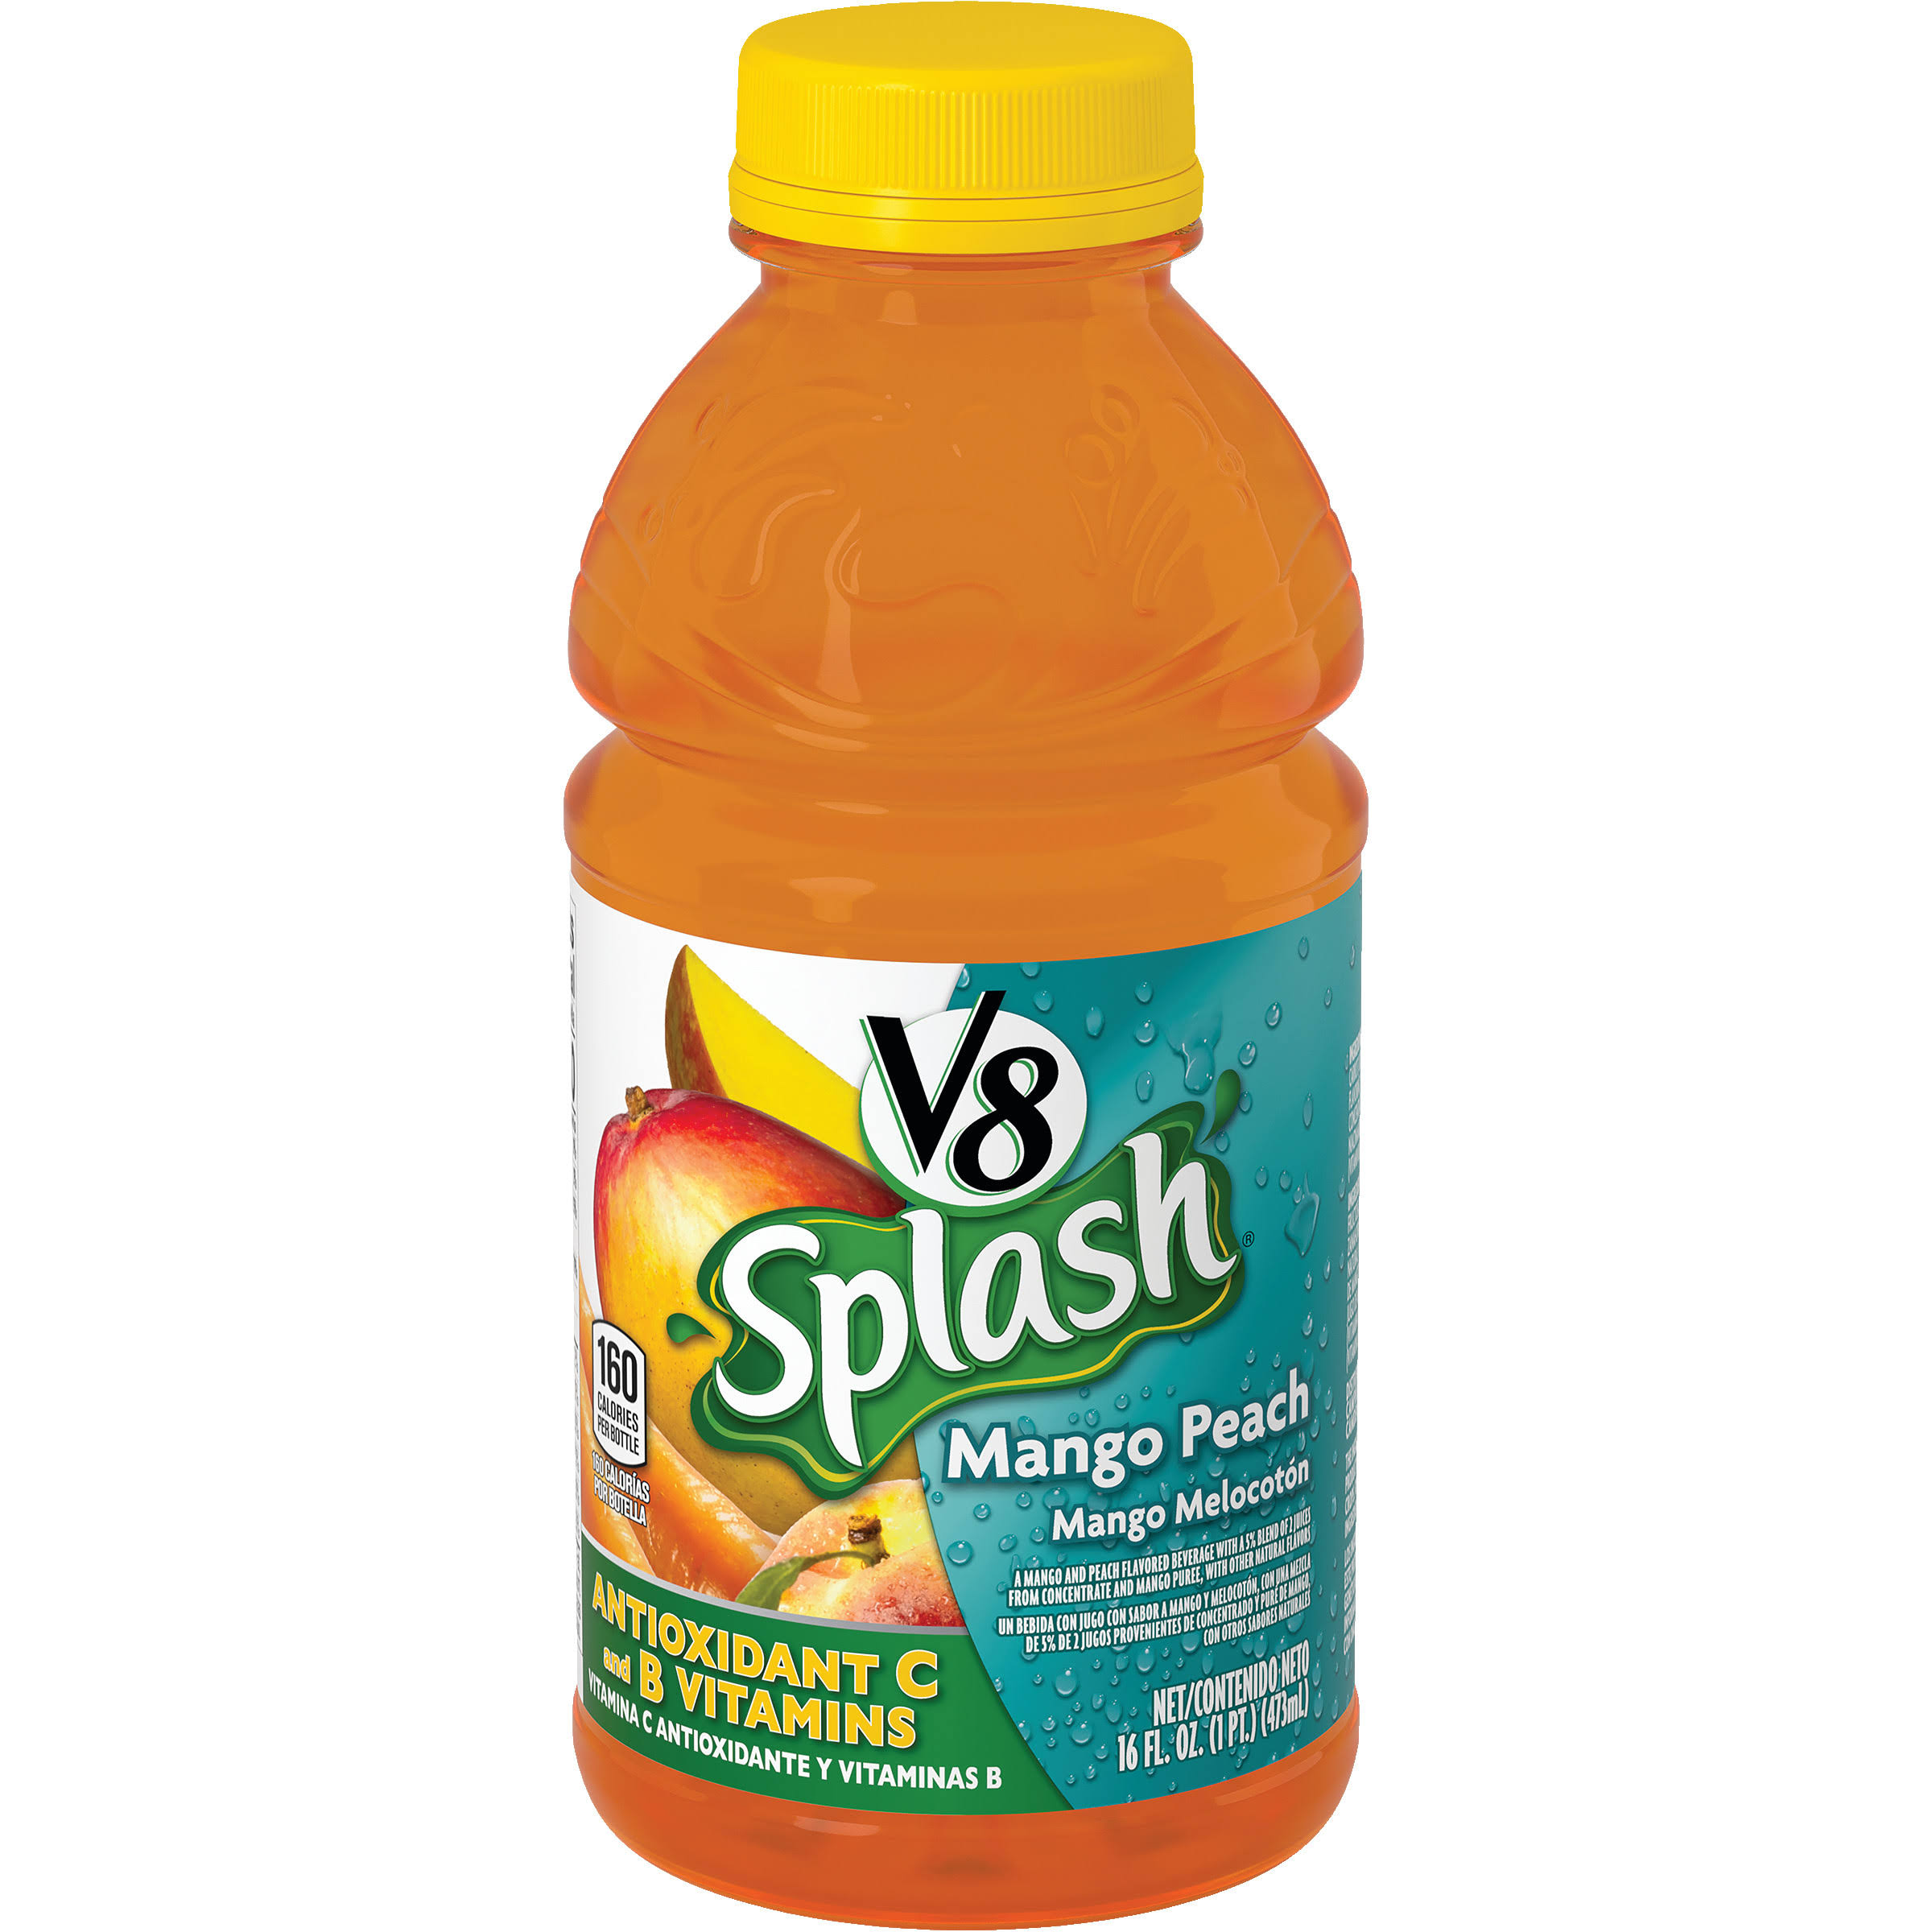 V8 Juice Beverage, Mango Peach, Splash - 16 fl oz